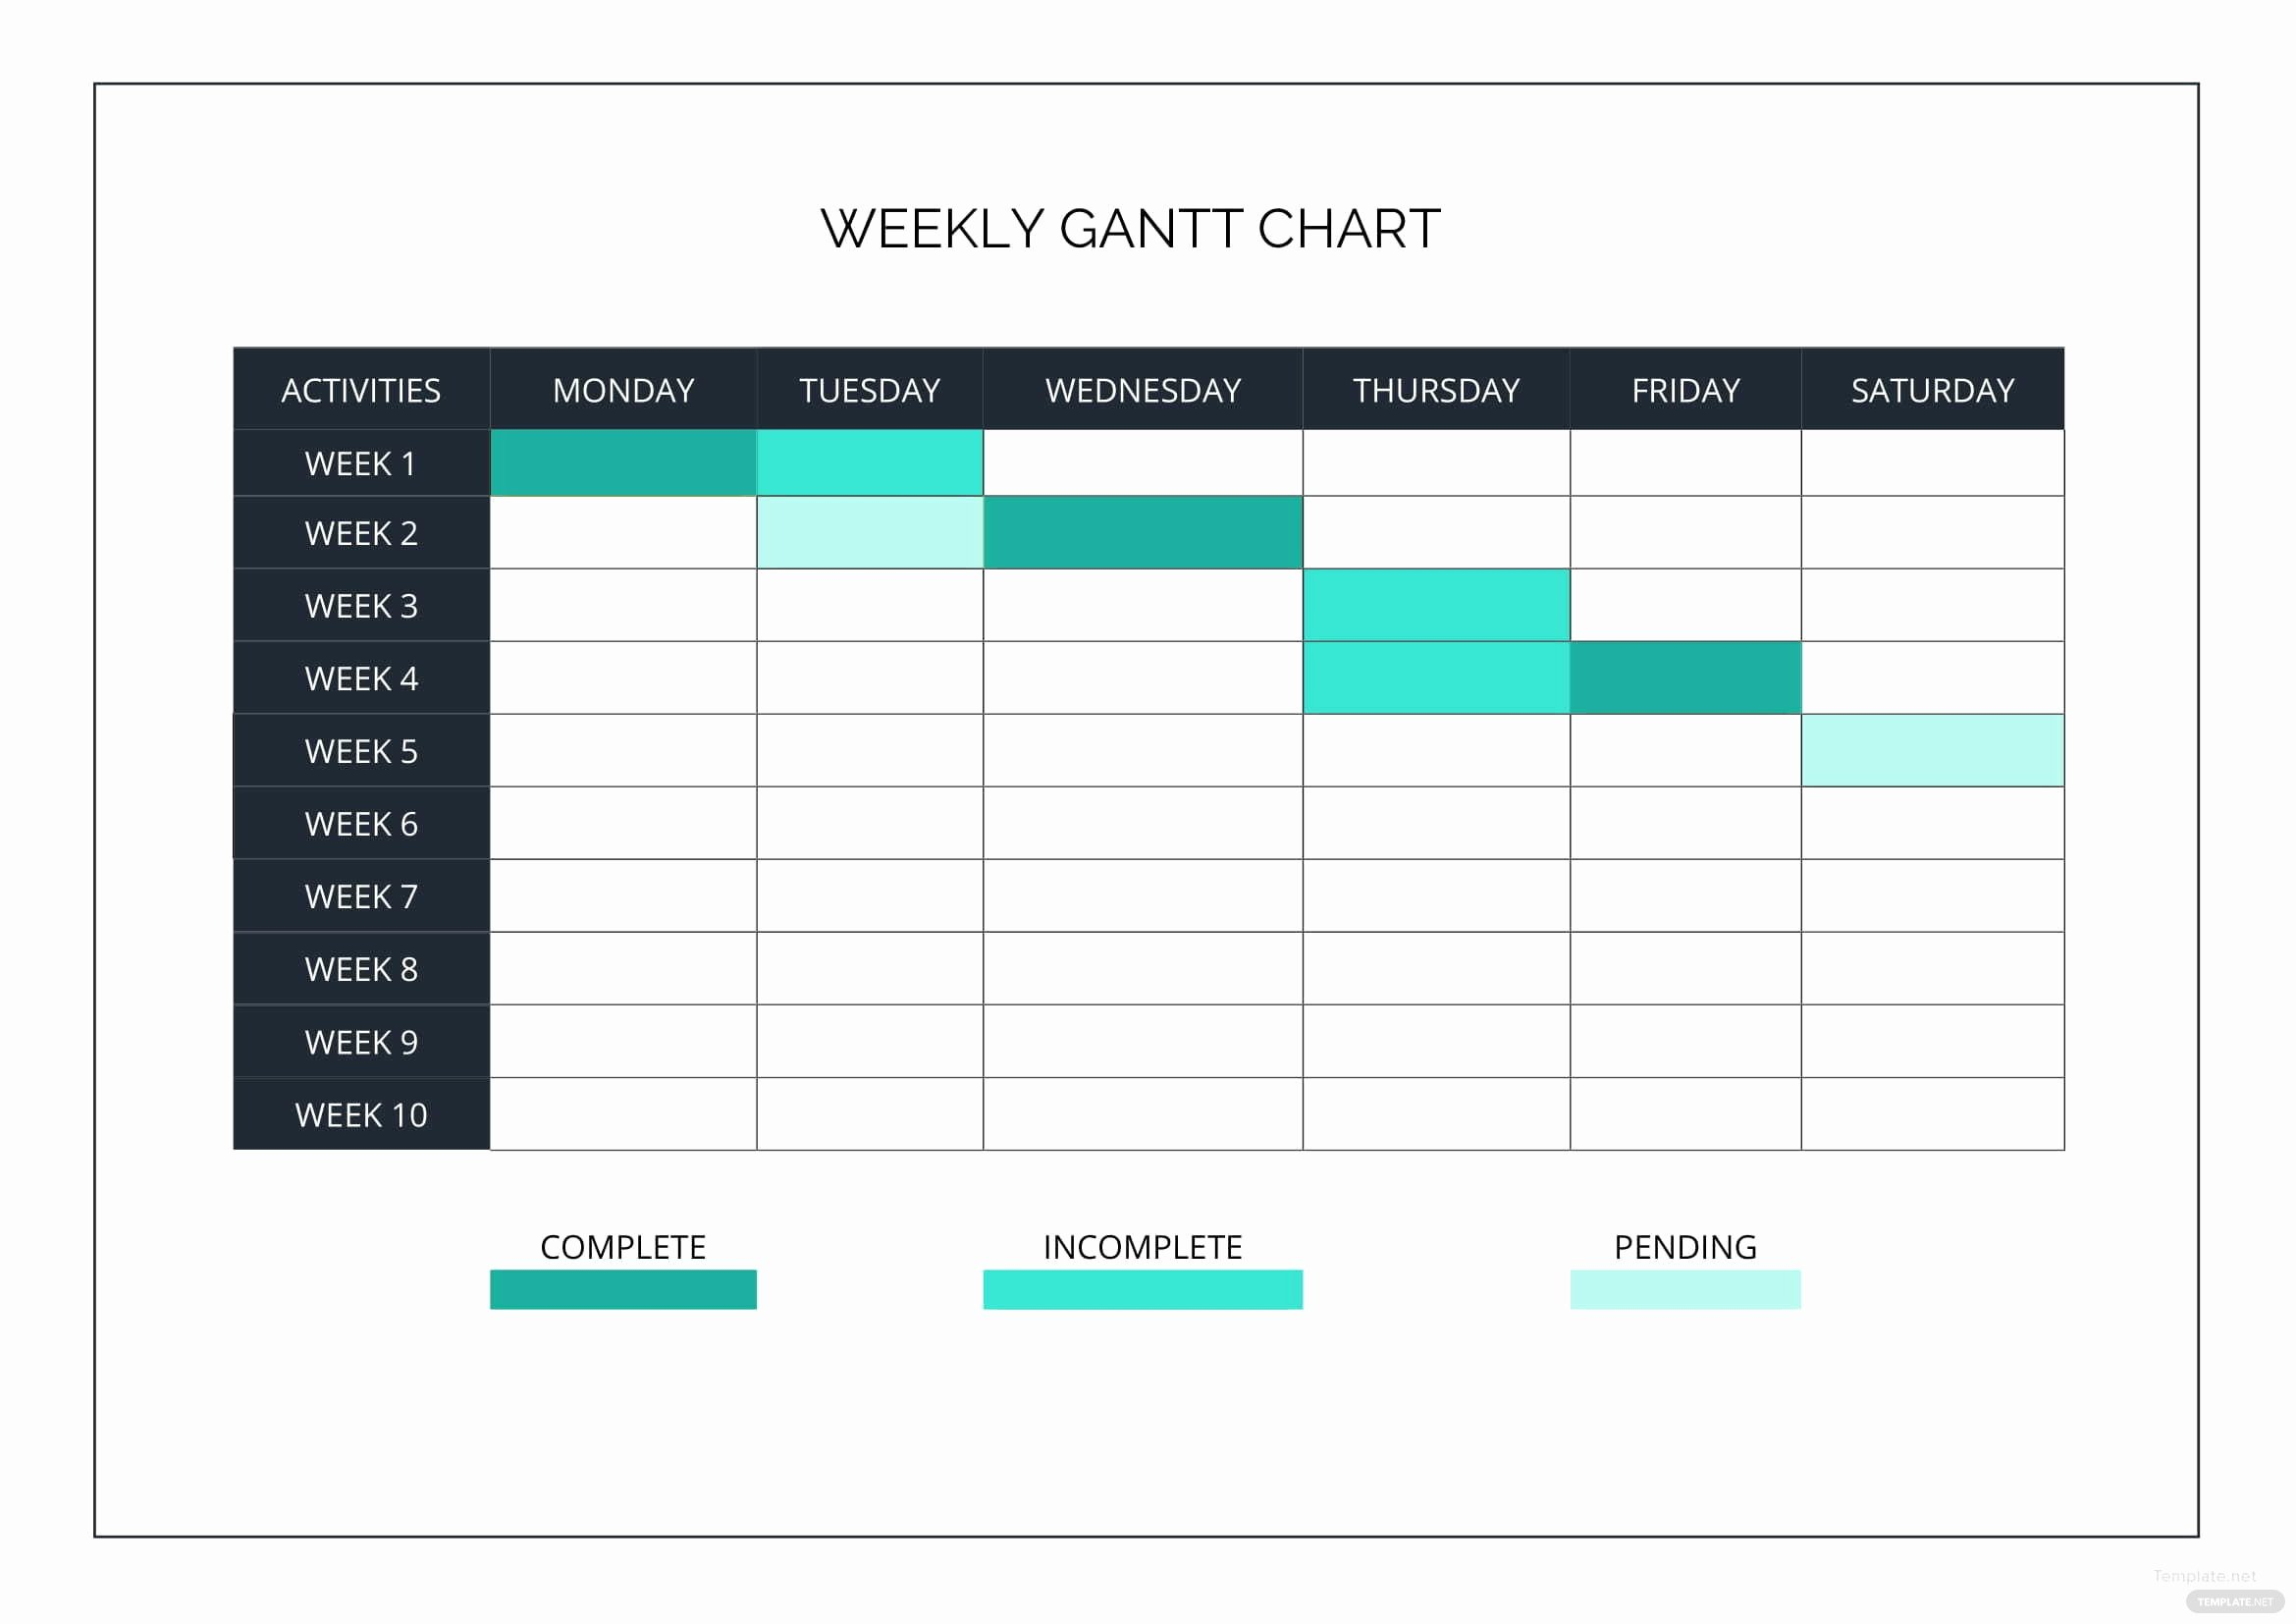 Gantt Chart Template Word Lovely Weekly Gantt Chart Template In Microsoft Word Excel